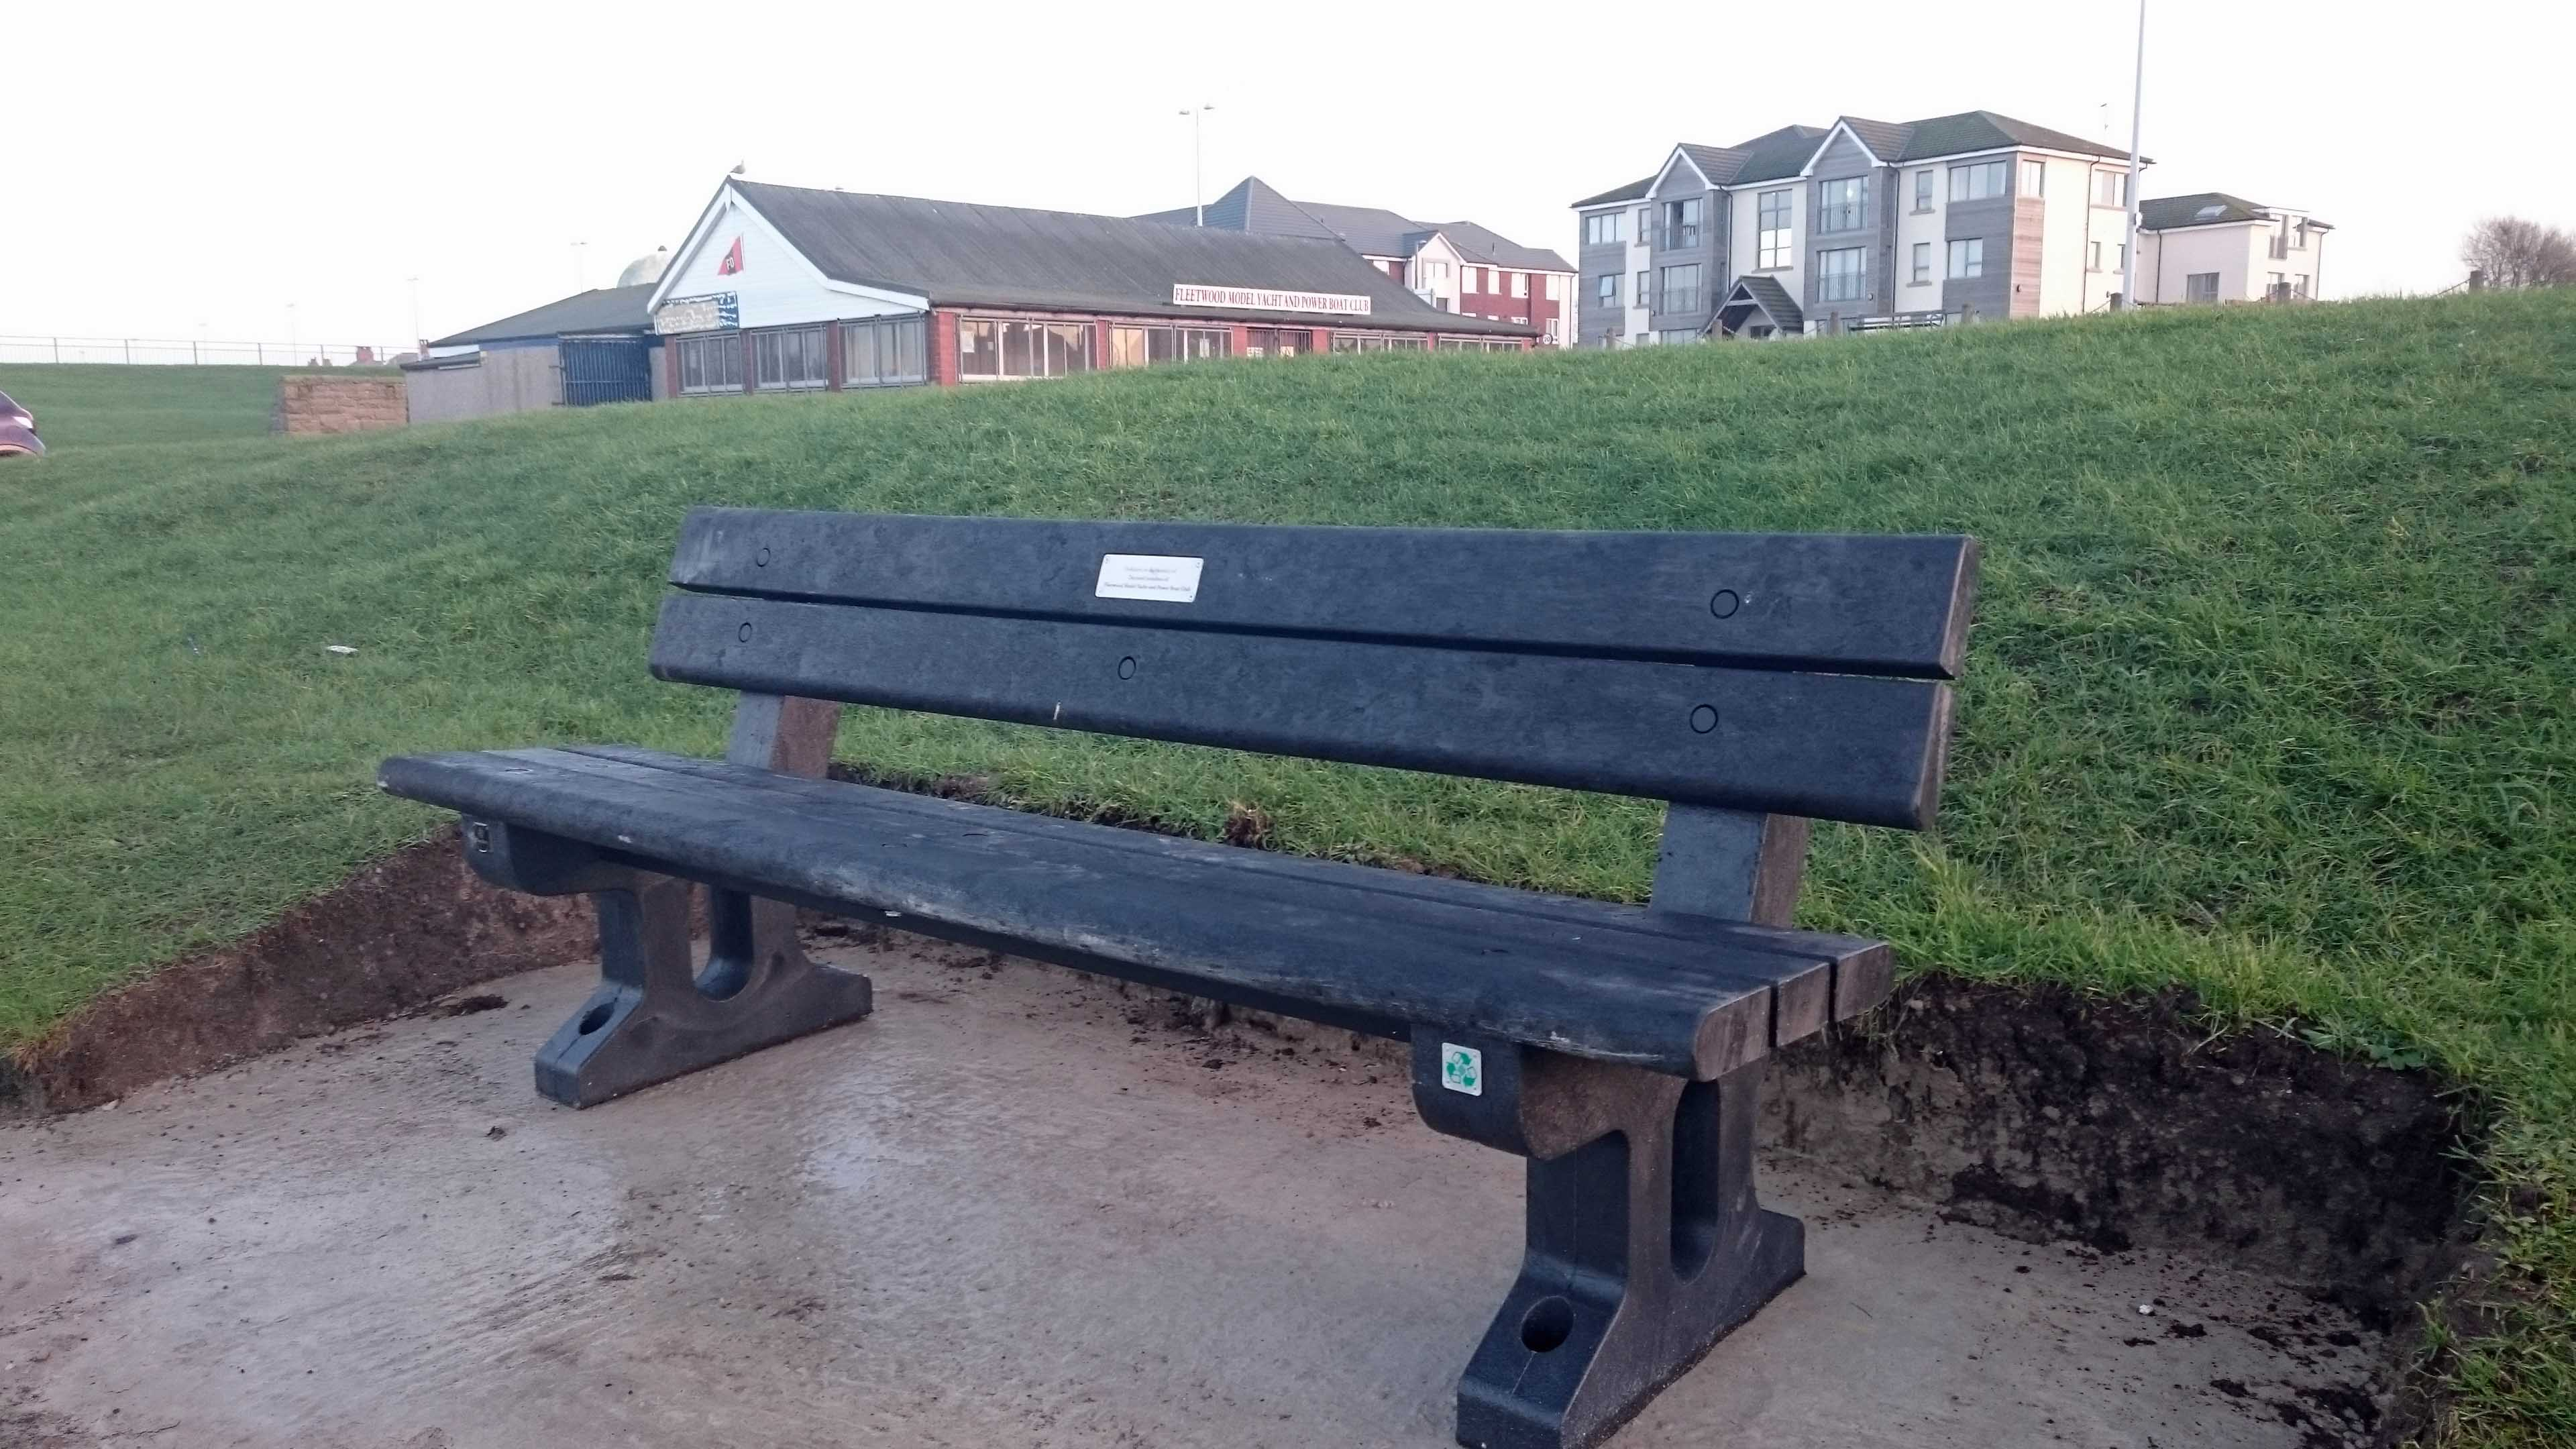 New Memorial Bench Fleetwood Mypbc